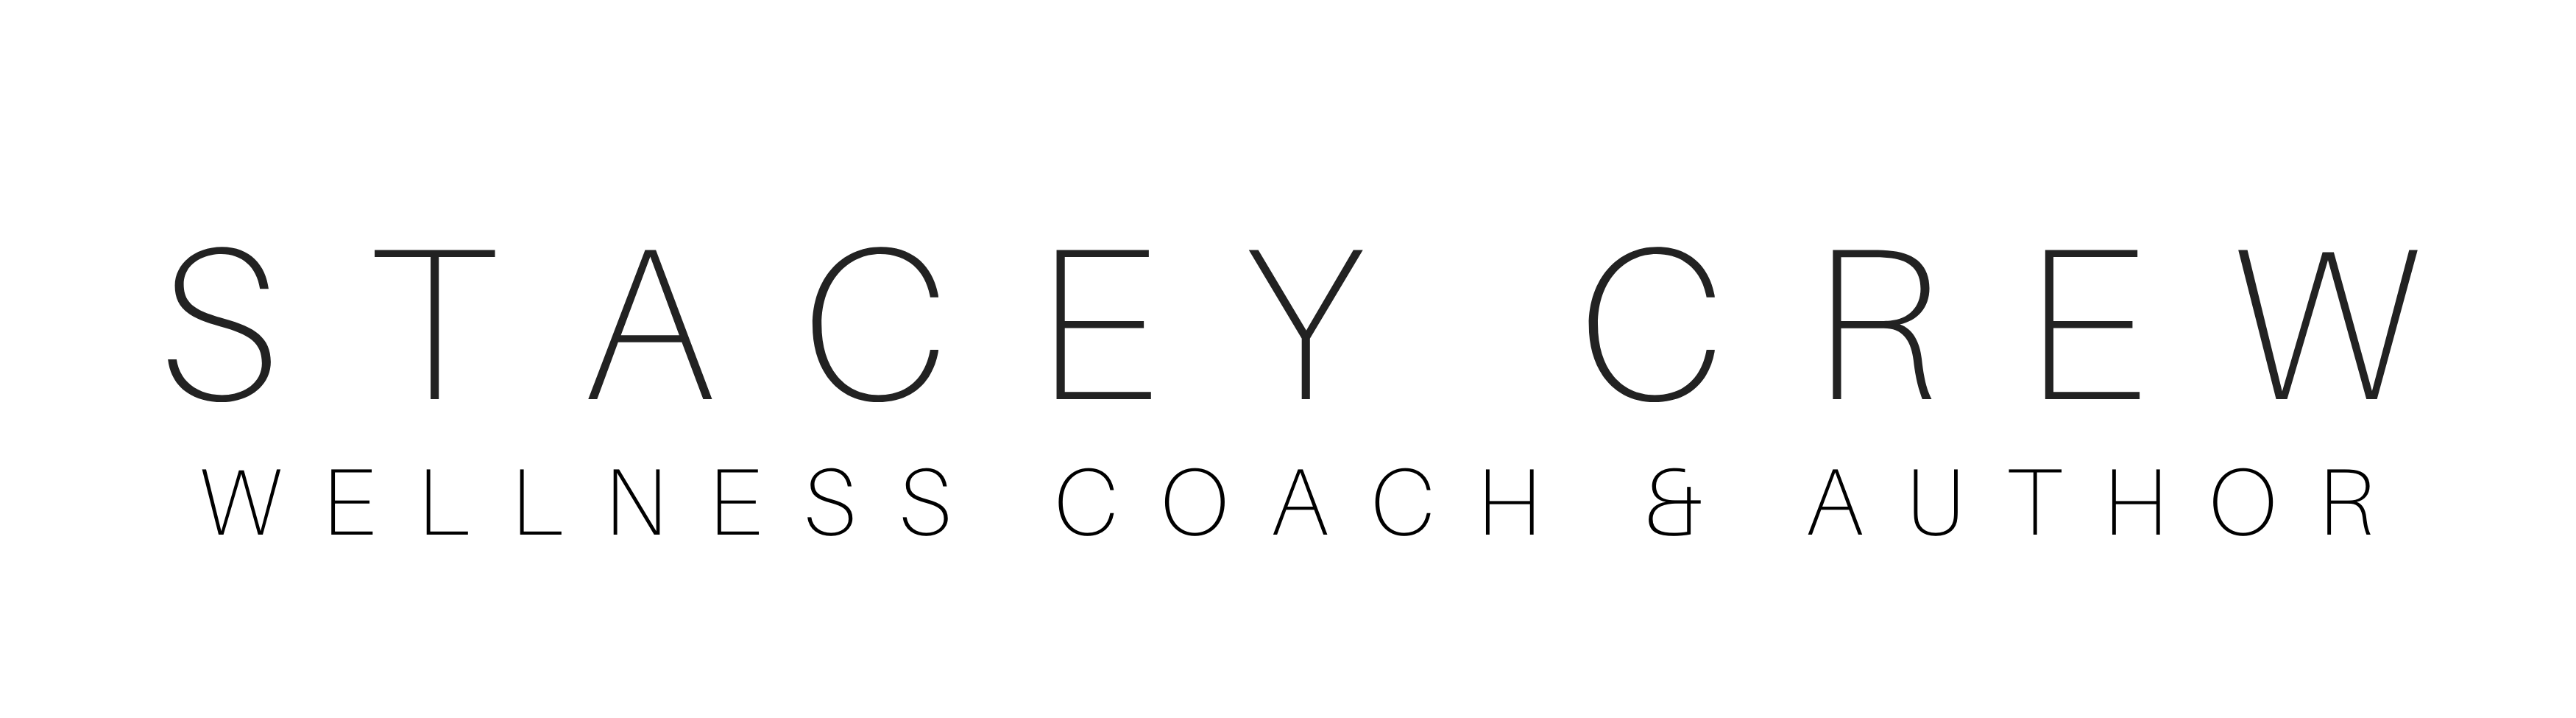 Stacey Crew Website Logo